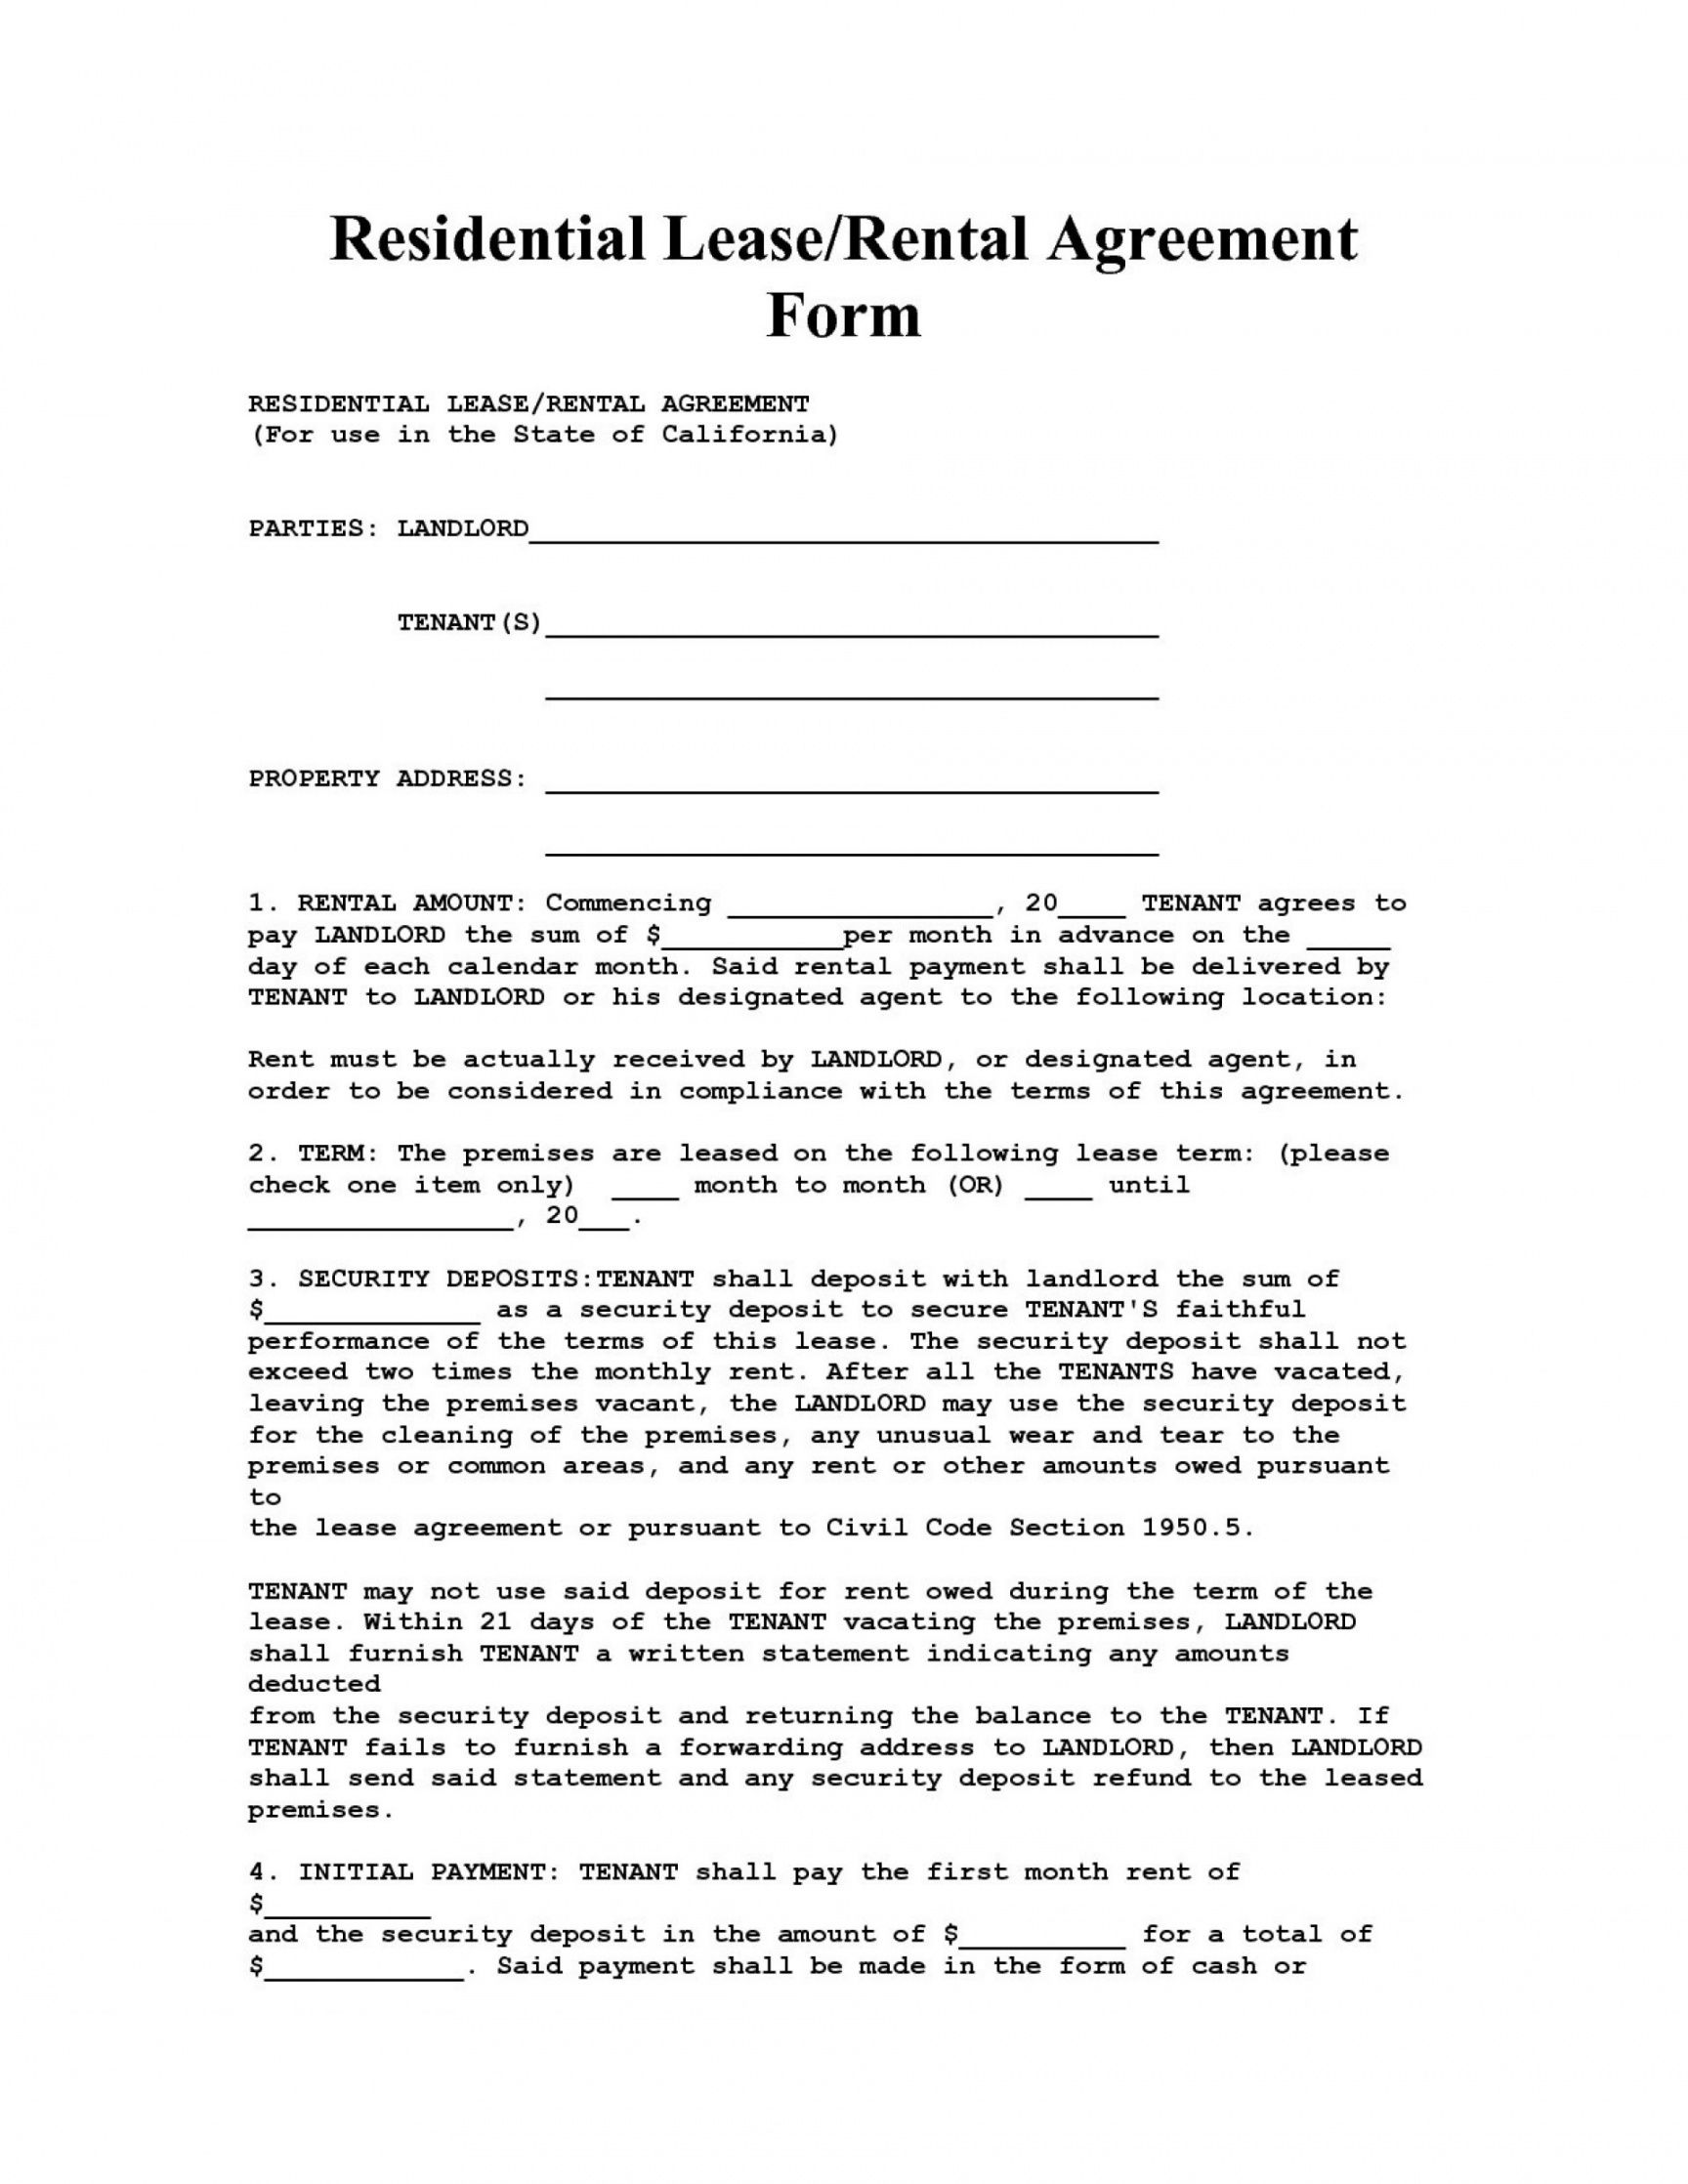 free 10 apartment rent agreement format  resume samples apartment rental deposit agreement doc